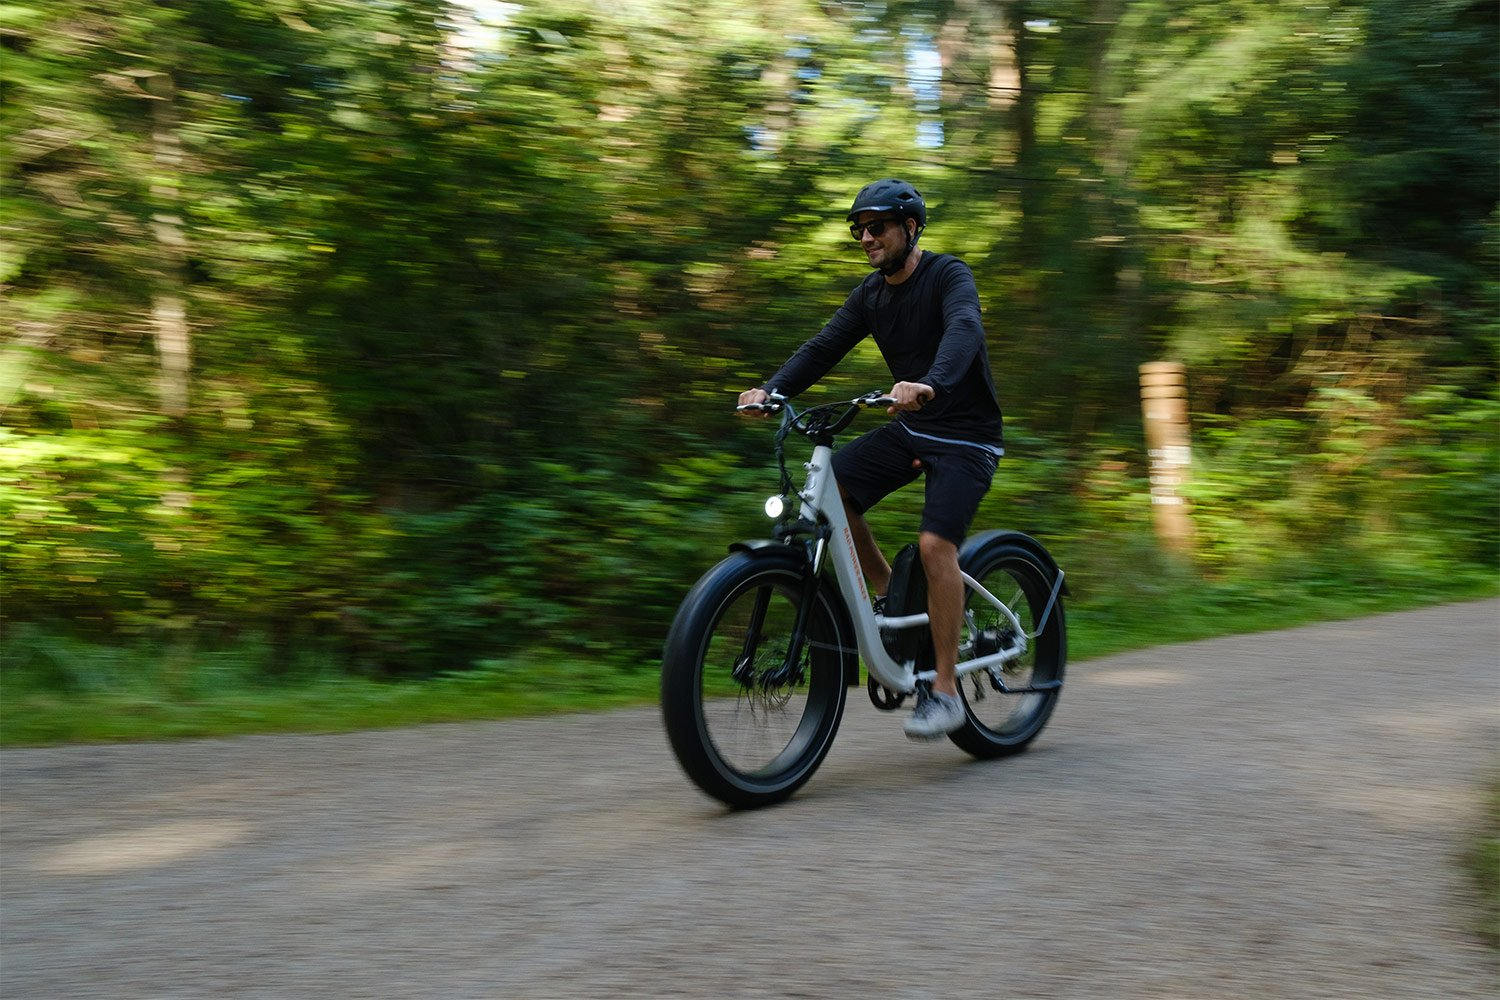 Man riding RadRover Step-Thru, which is class 2 electric bike